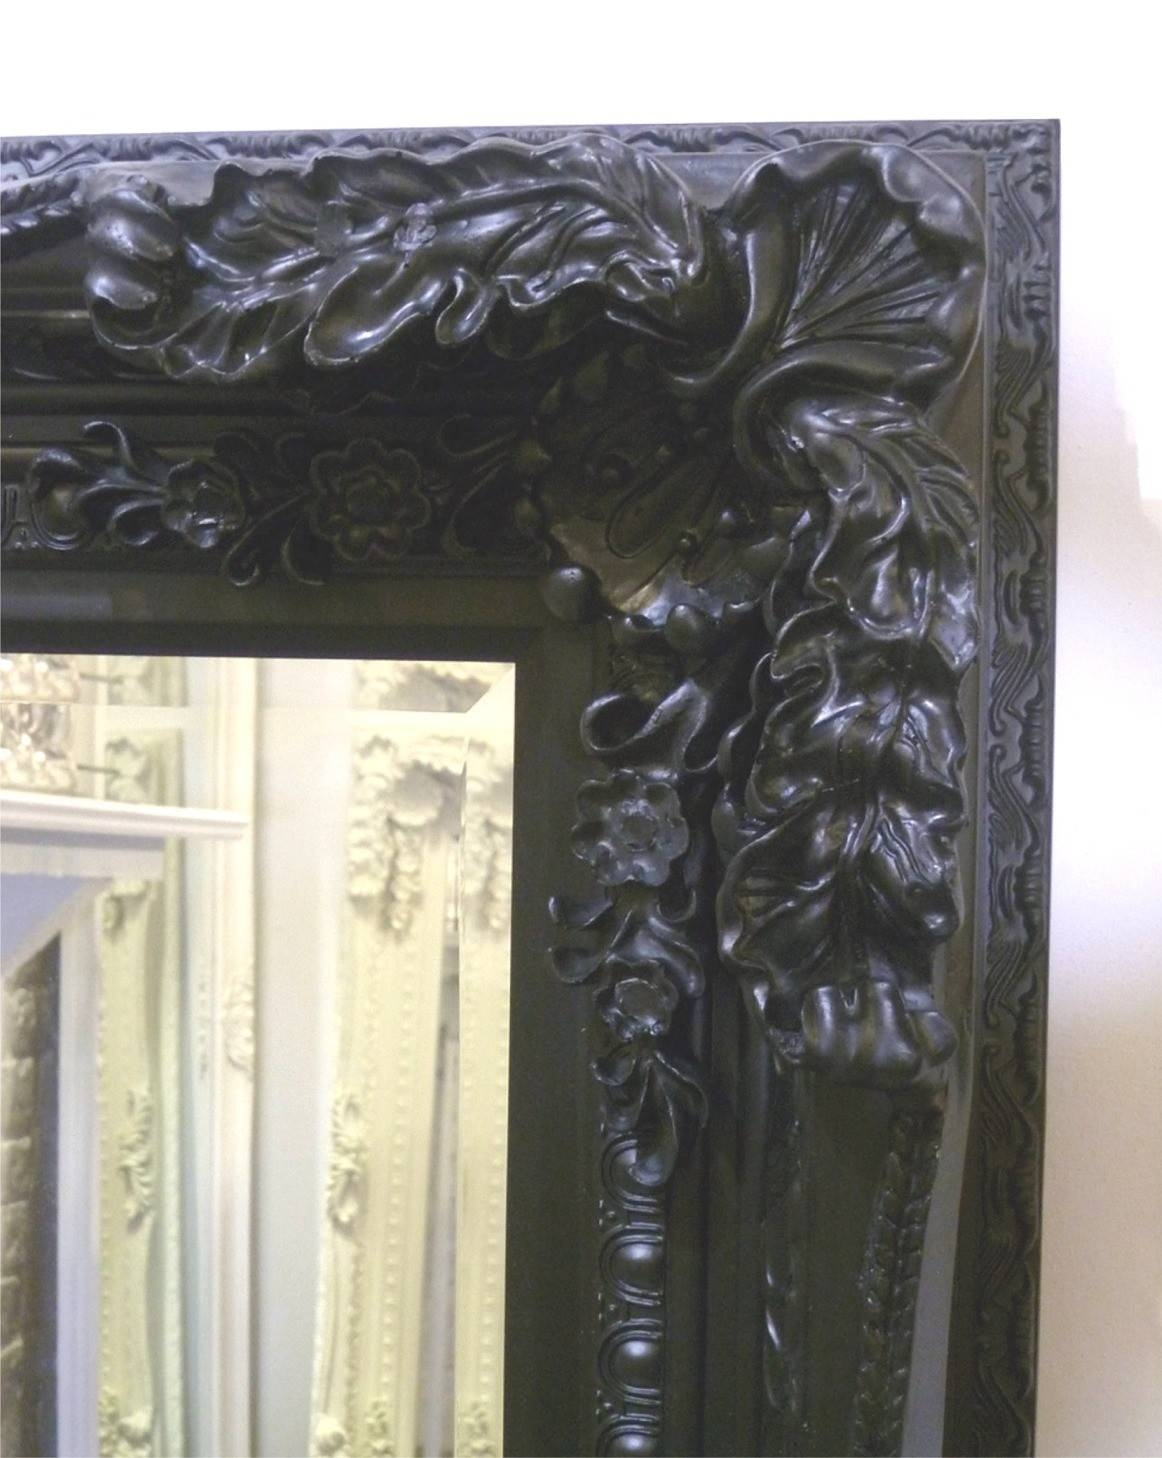 The Best Value Black Chelsea Ornate Mirrors Online. intended for Black Ornate Mirrors (Image 10 of 15)